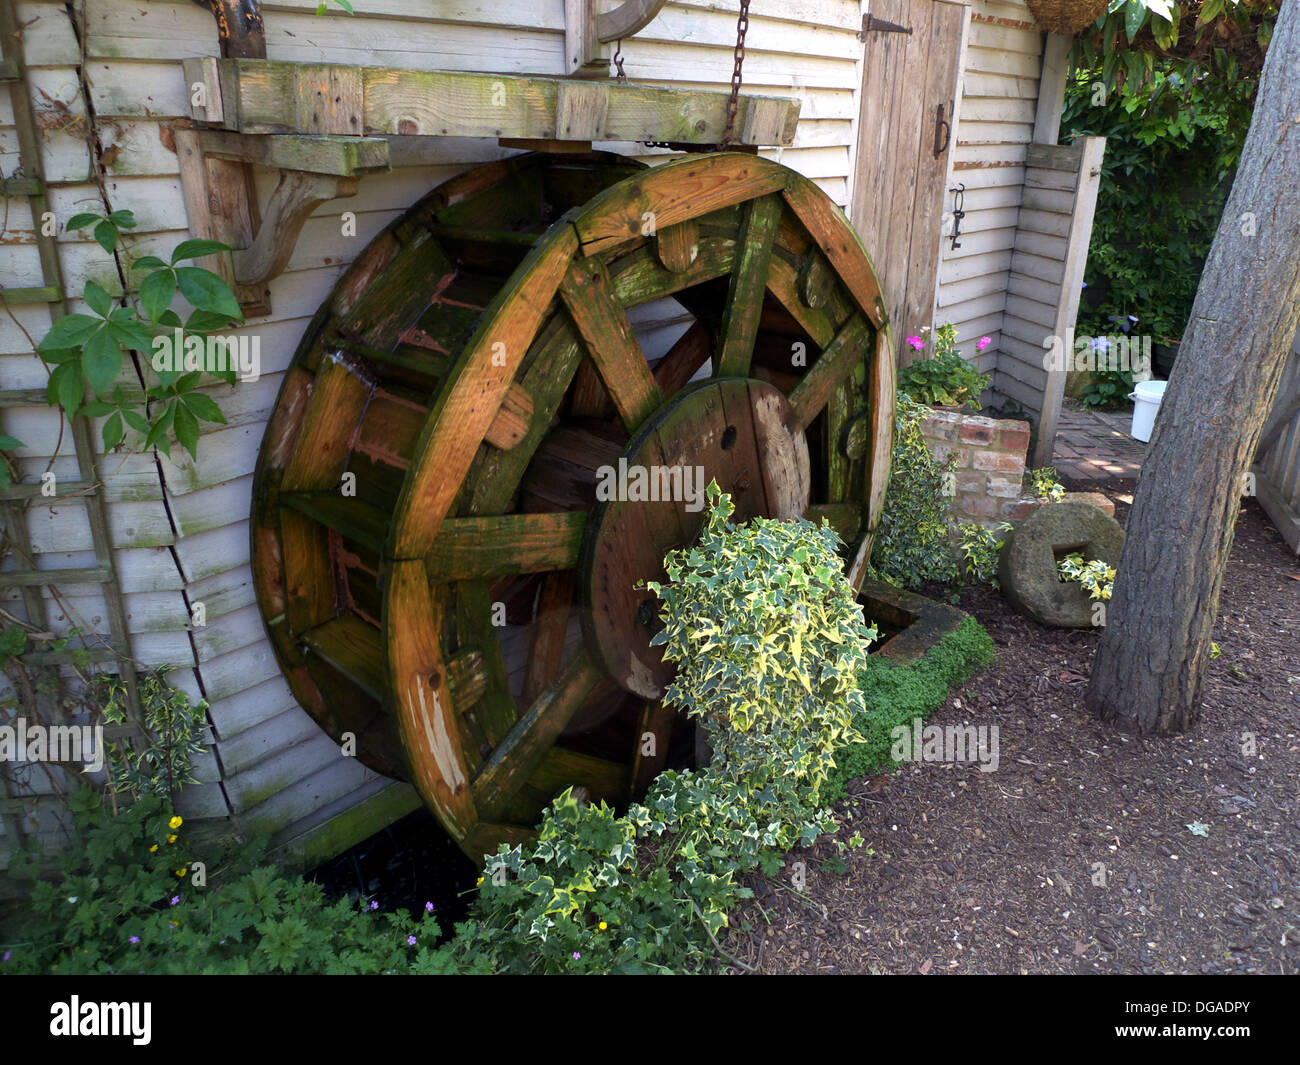 Mock Water Wheel, Garden Feature, Bedfordshire, UK   Stock Image